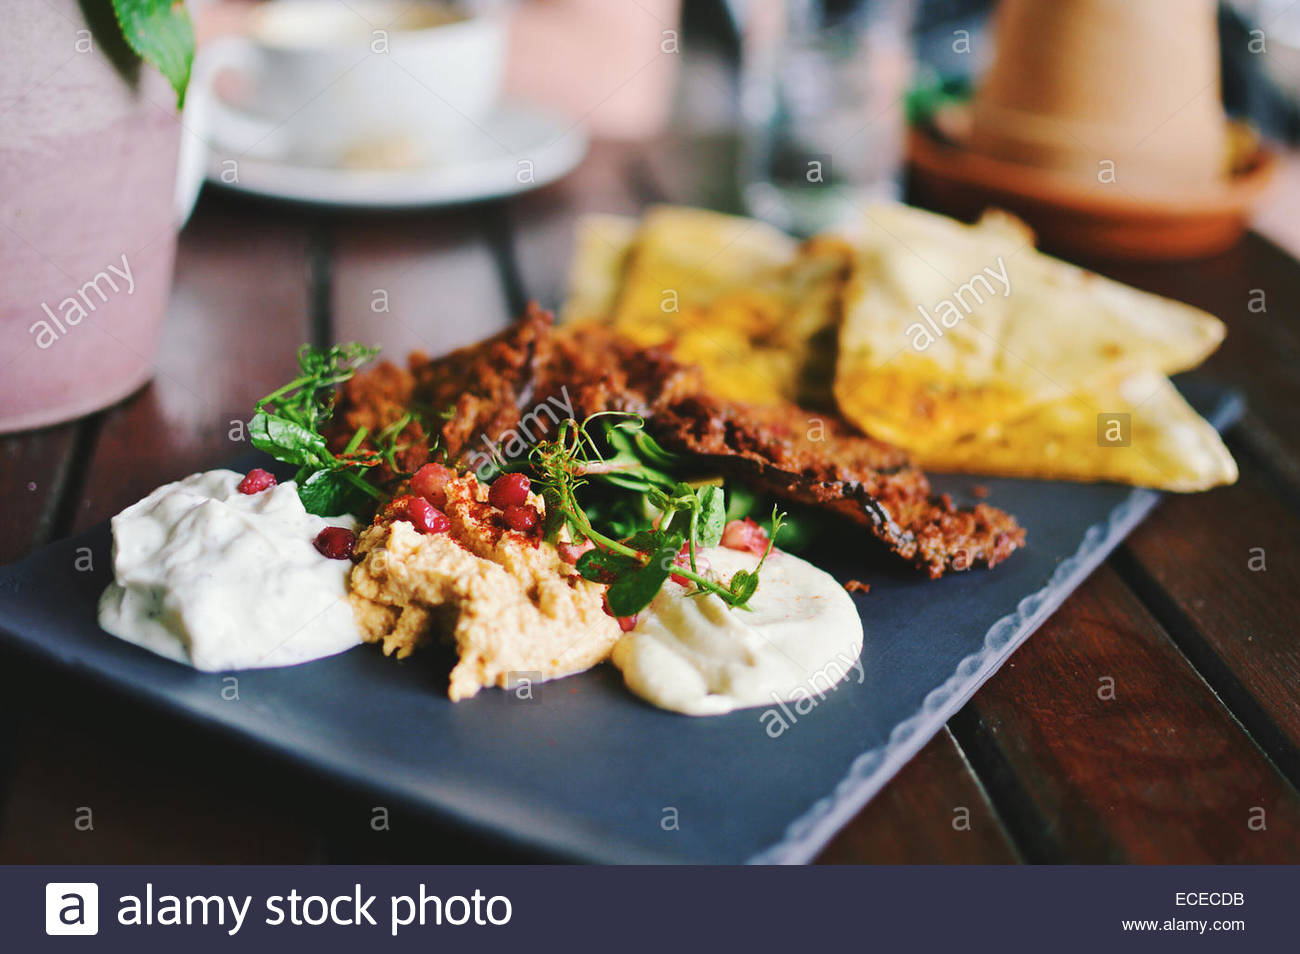 Mediterranean mezze with flat bread, hummus and pomegranate - Stock Image